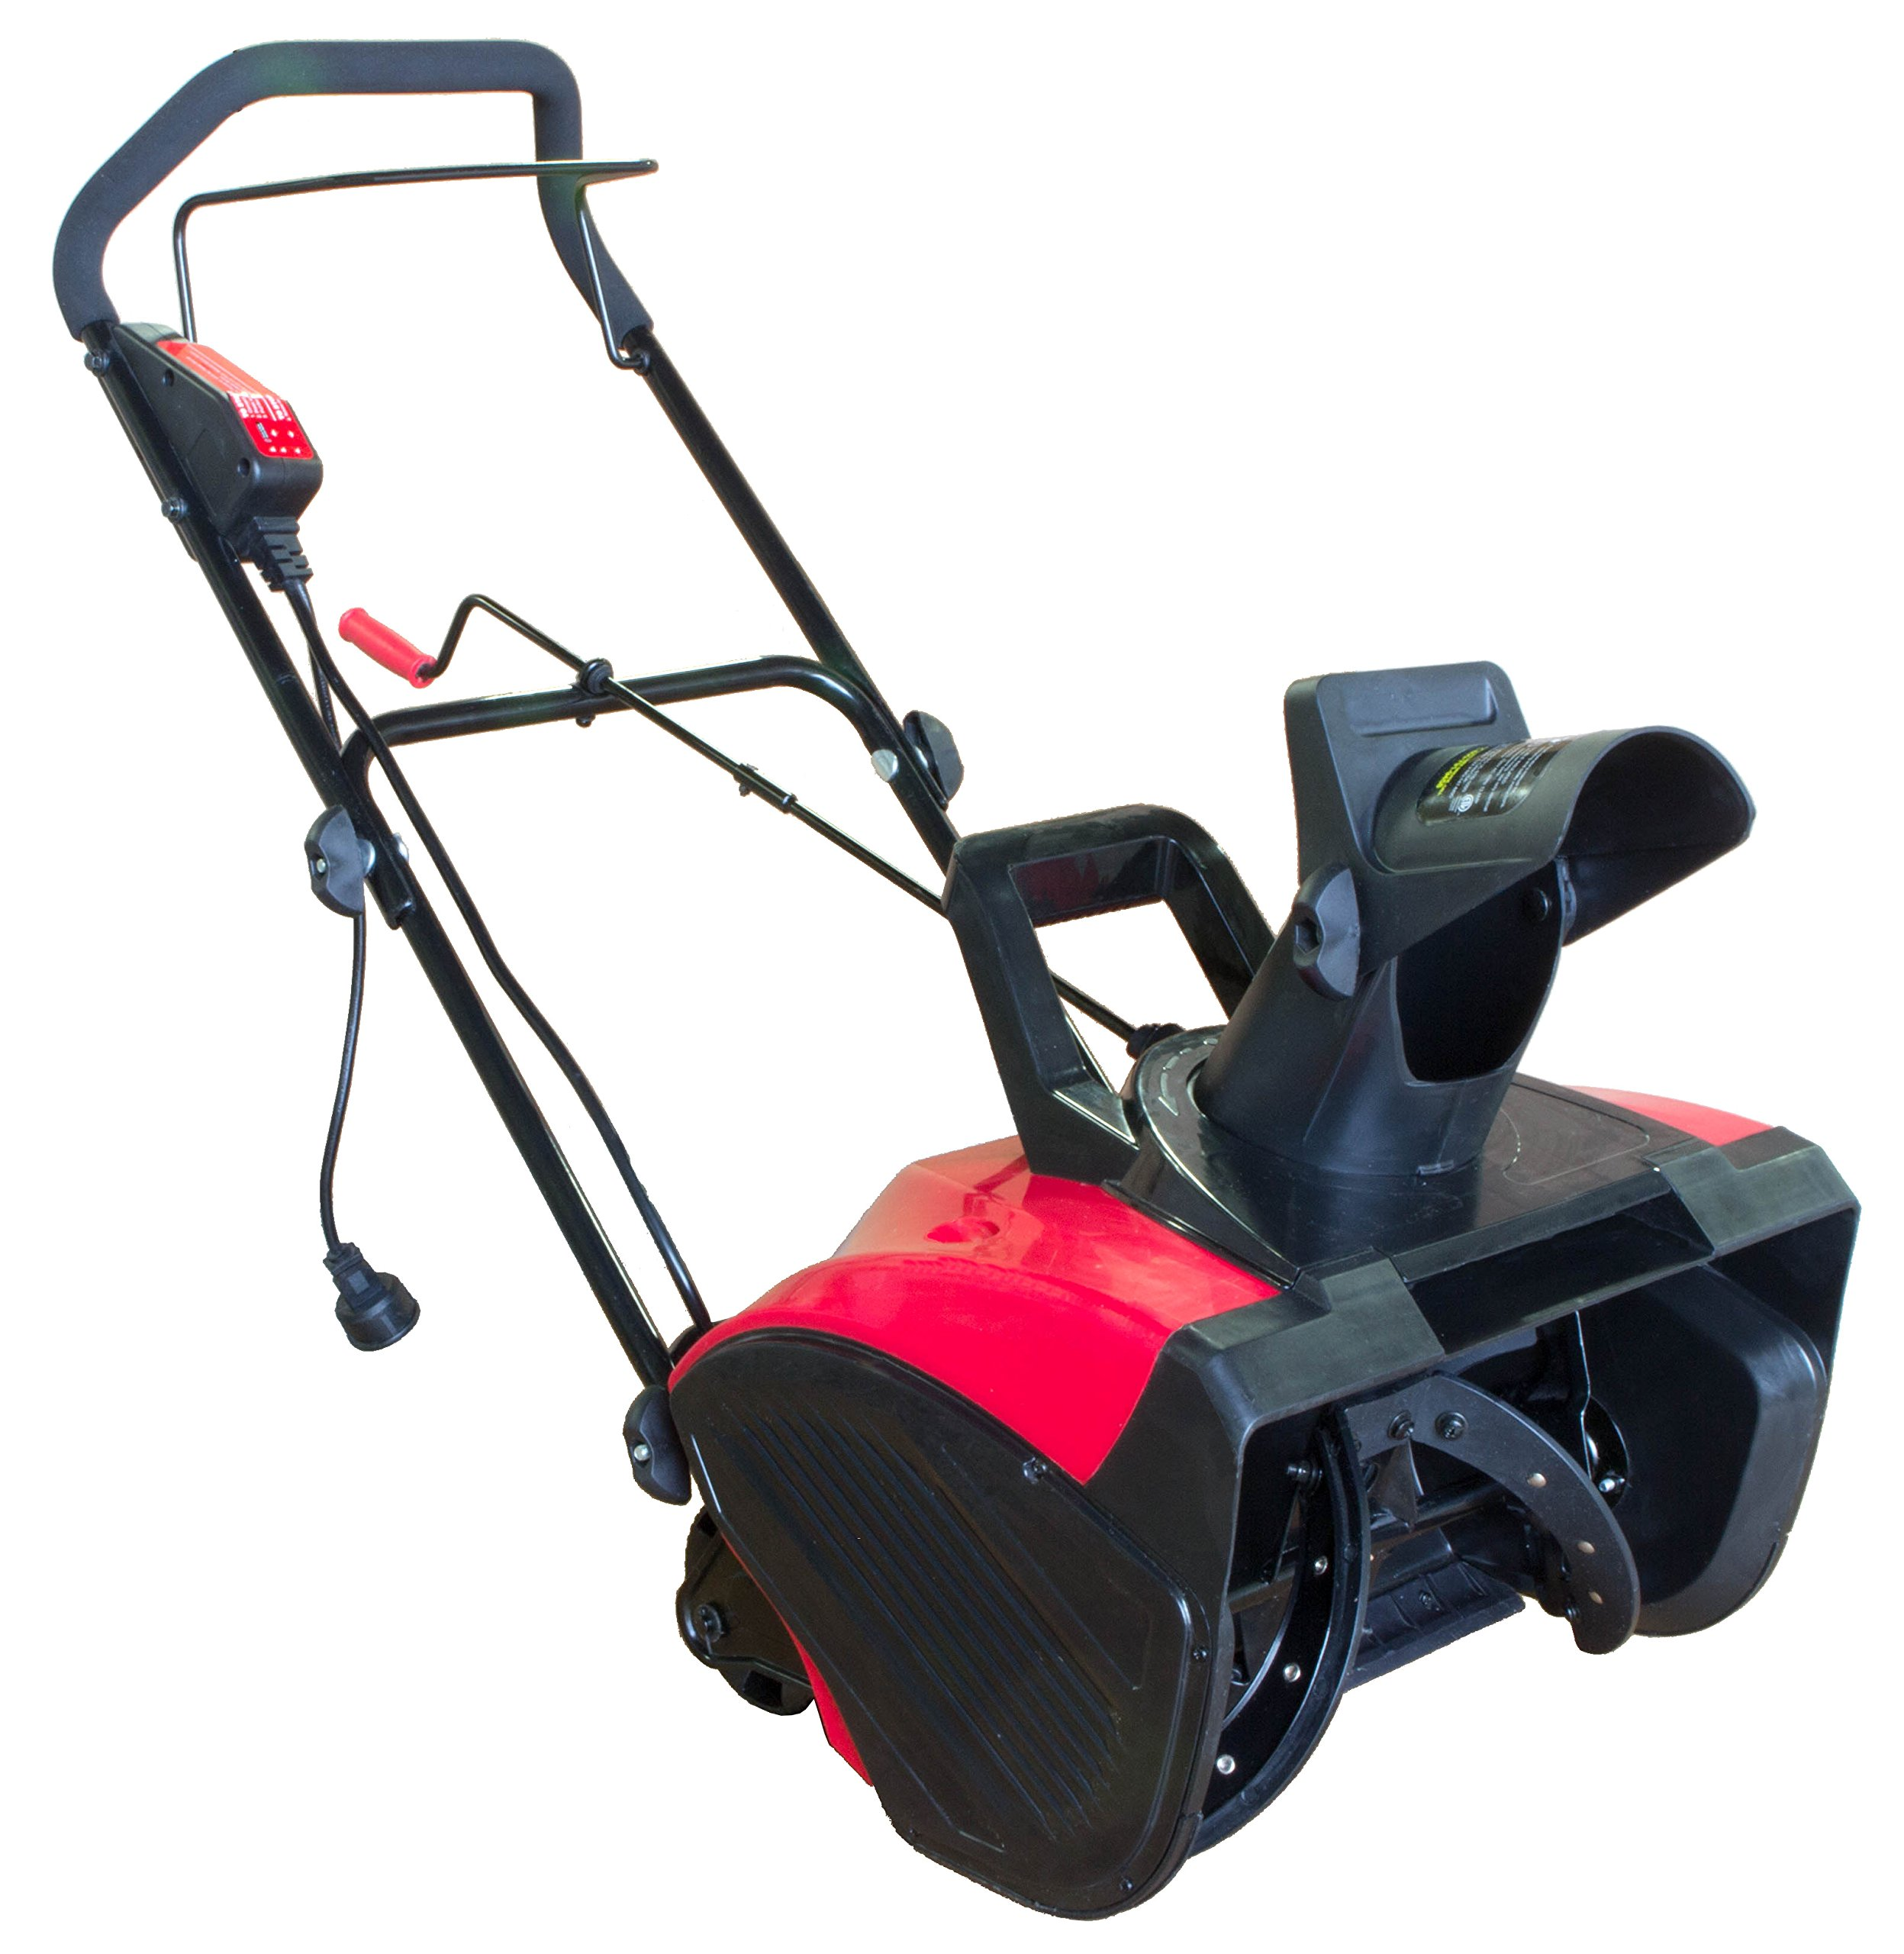 PowerSmart DB5023 18-Inch 13 Amp Electric Snow Thrower